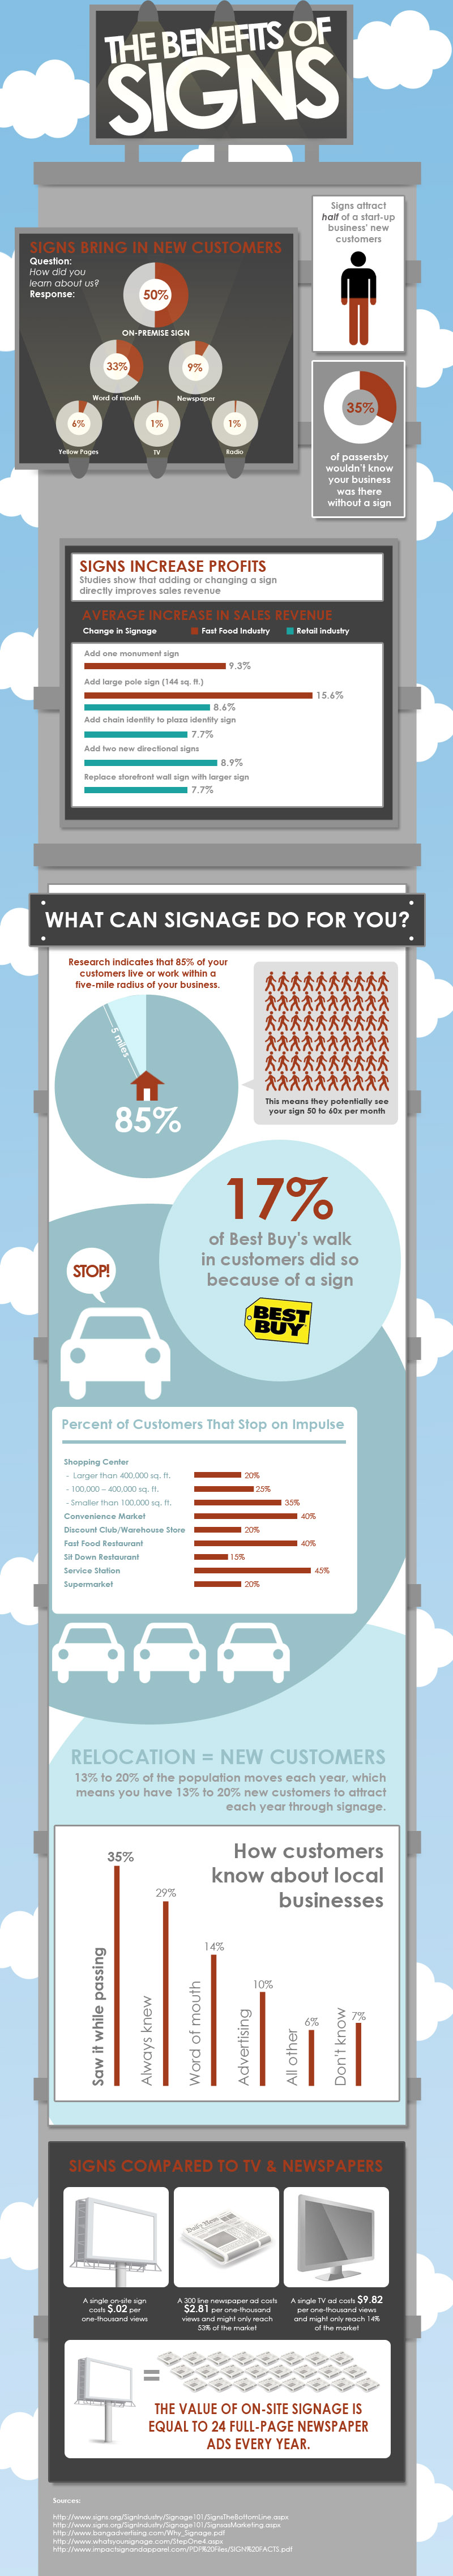 benefit-of-signs-infographic